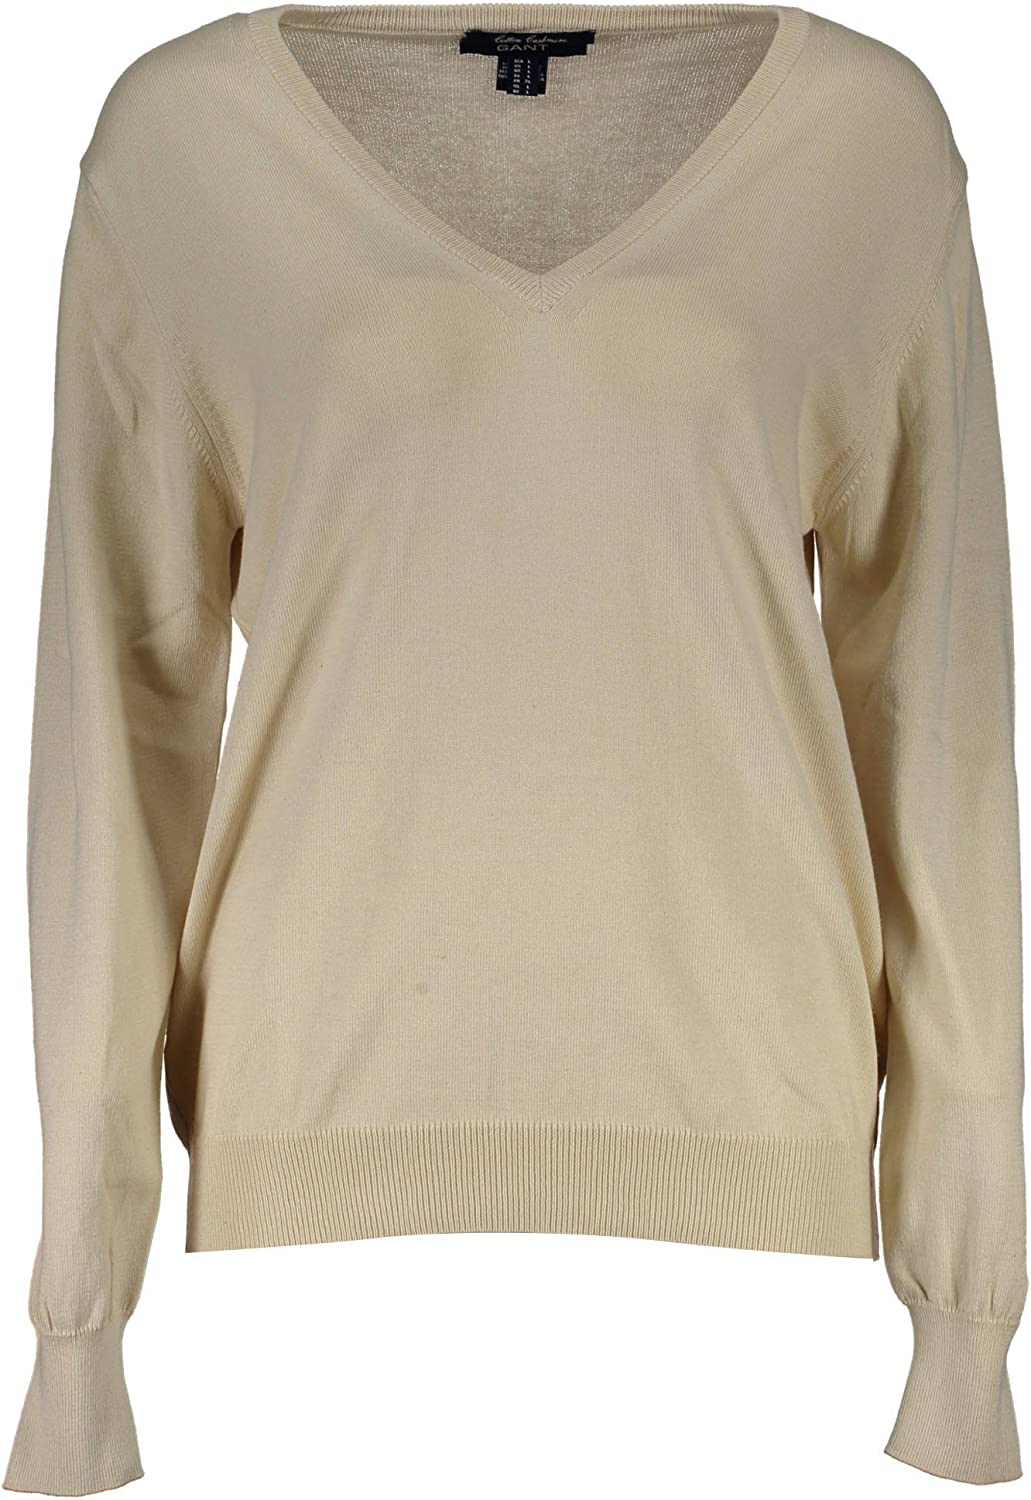 Gant 1401.488422 Sweater Women Beige 34 XL